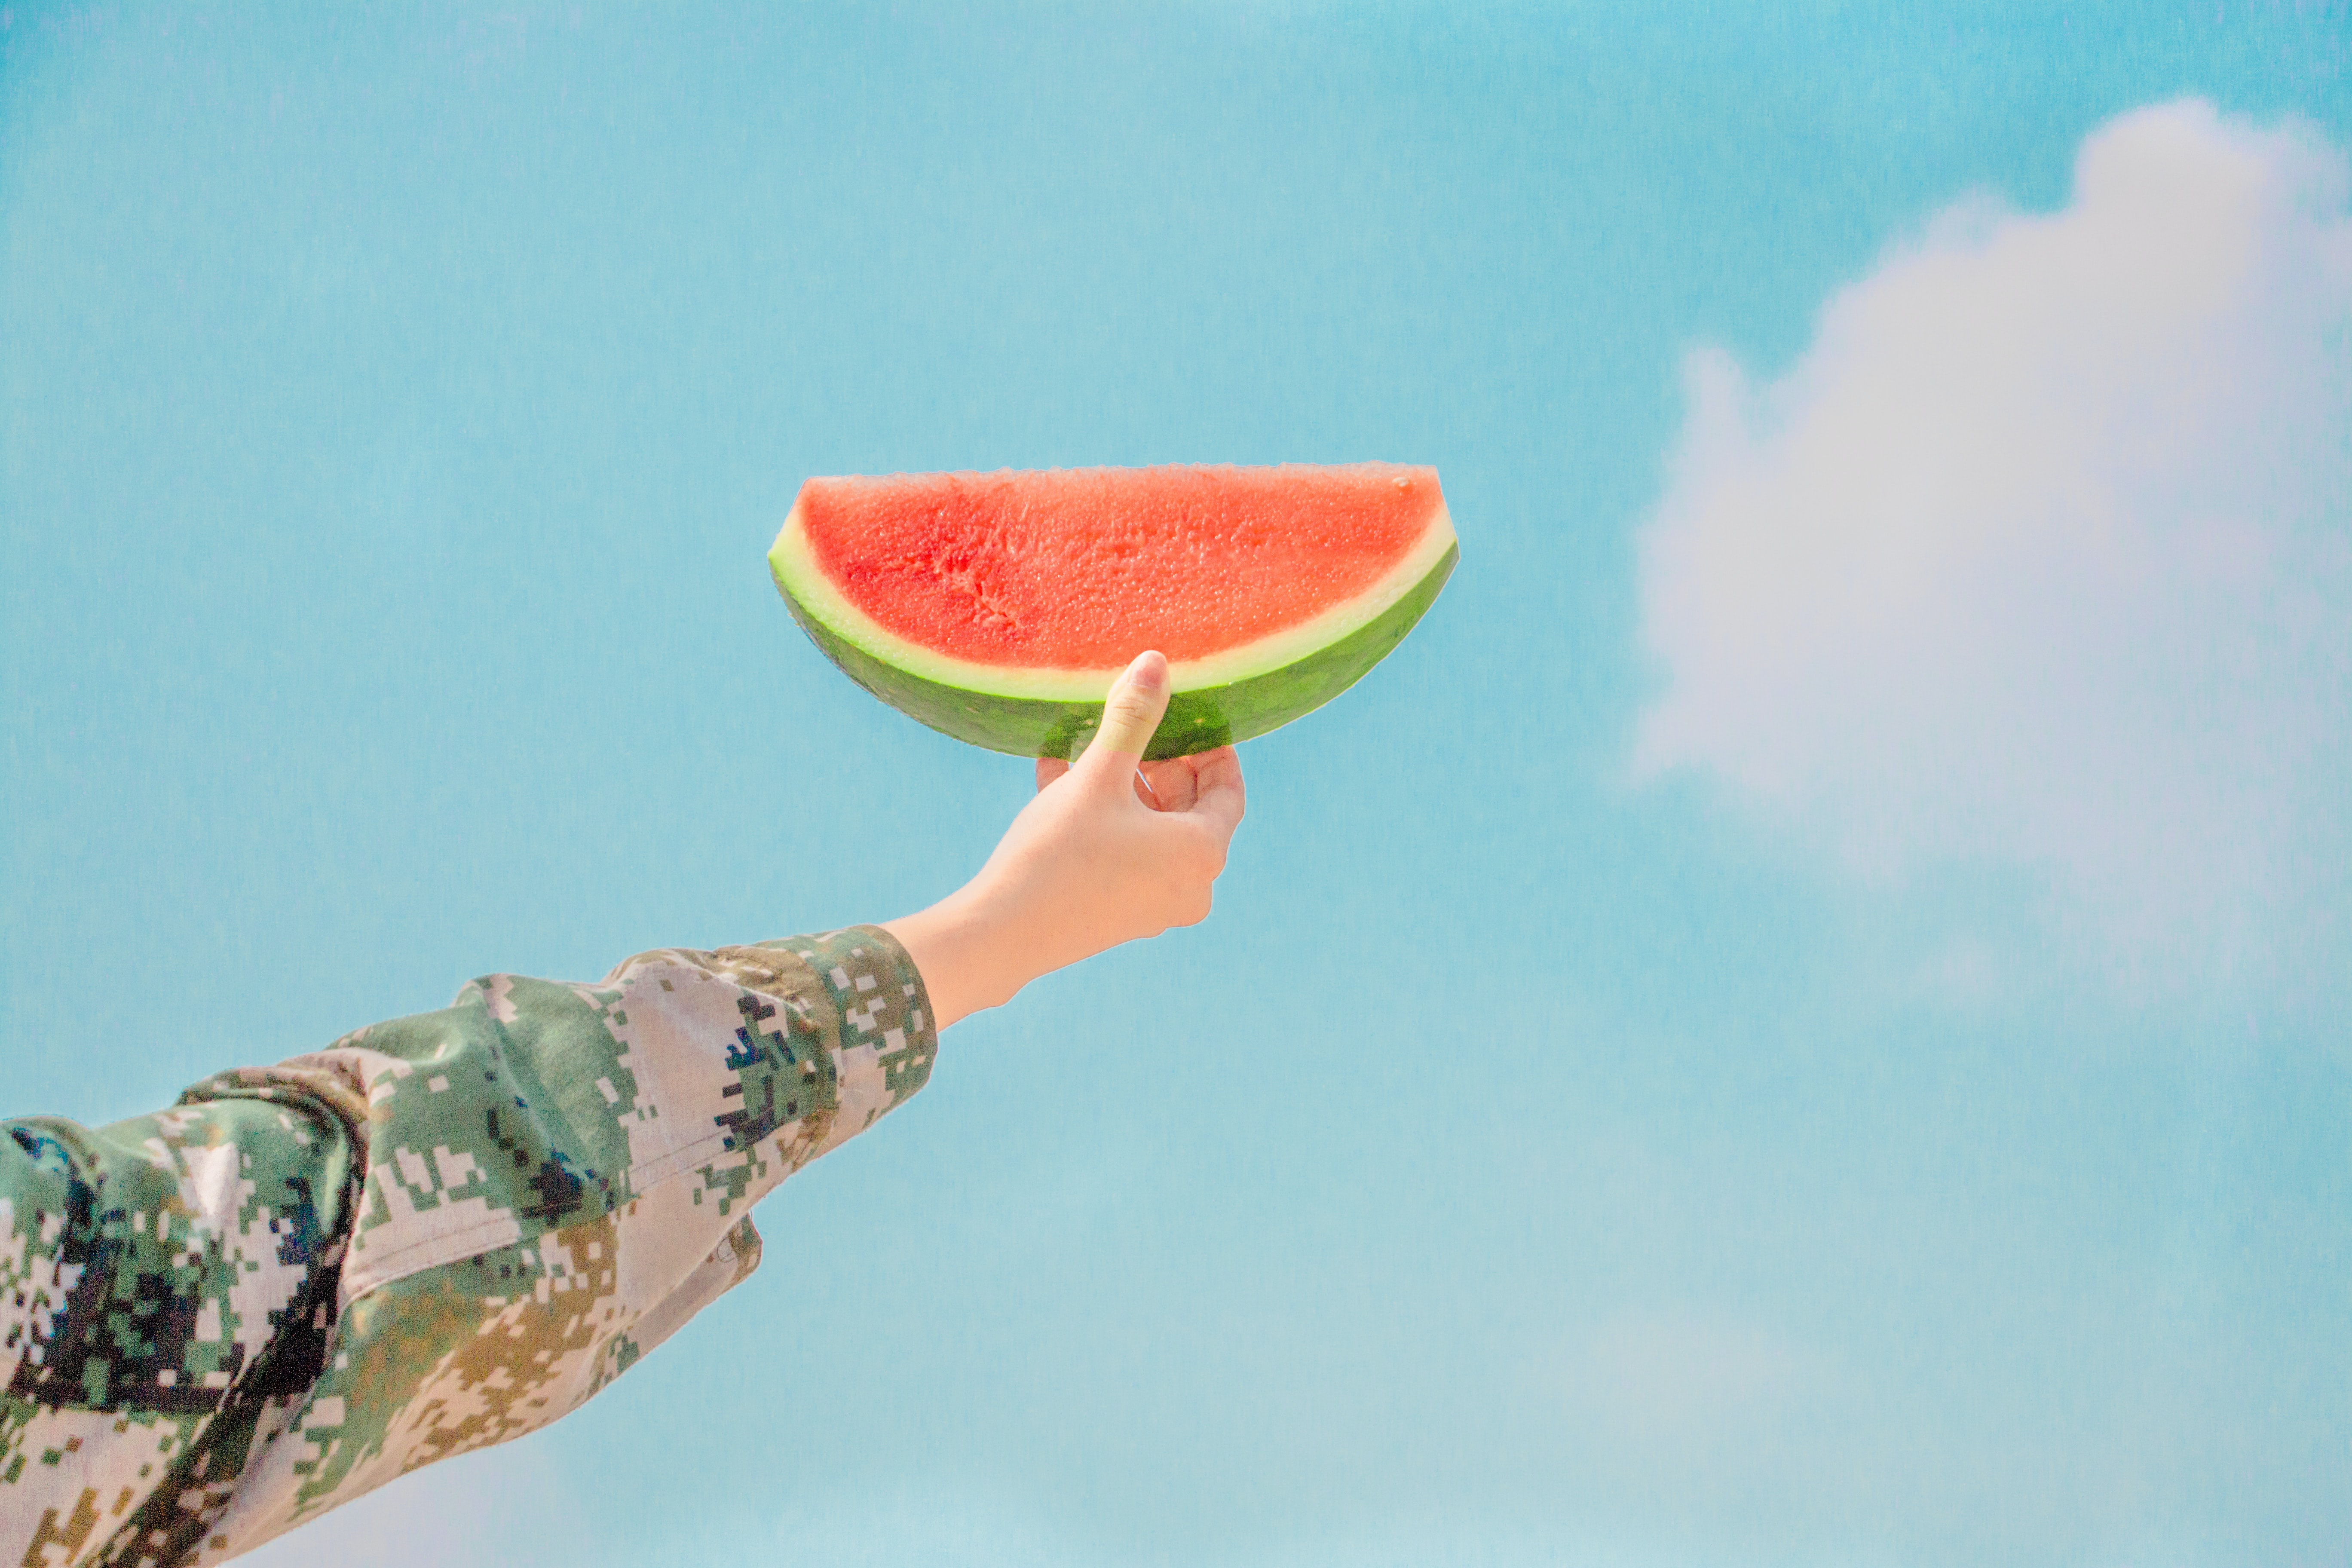 Person wearing a camo holds a piece of watermelon to the blue sky